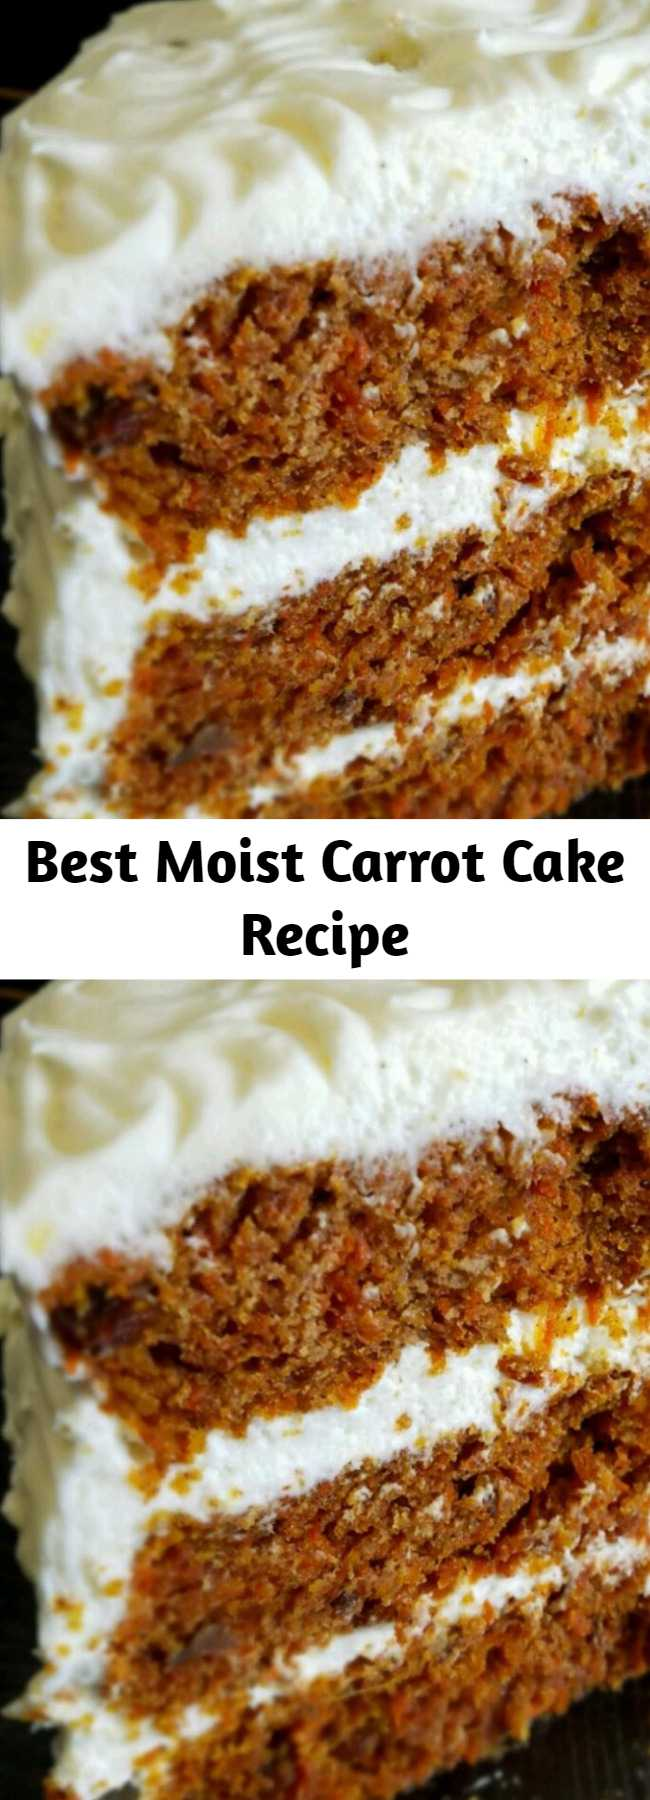 Best Moist Carrot Cake Recipe - A moist and flavorful recipe that makes a large quantity of cake. I have been hounded to make this cake time and time again.